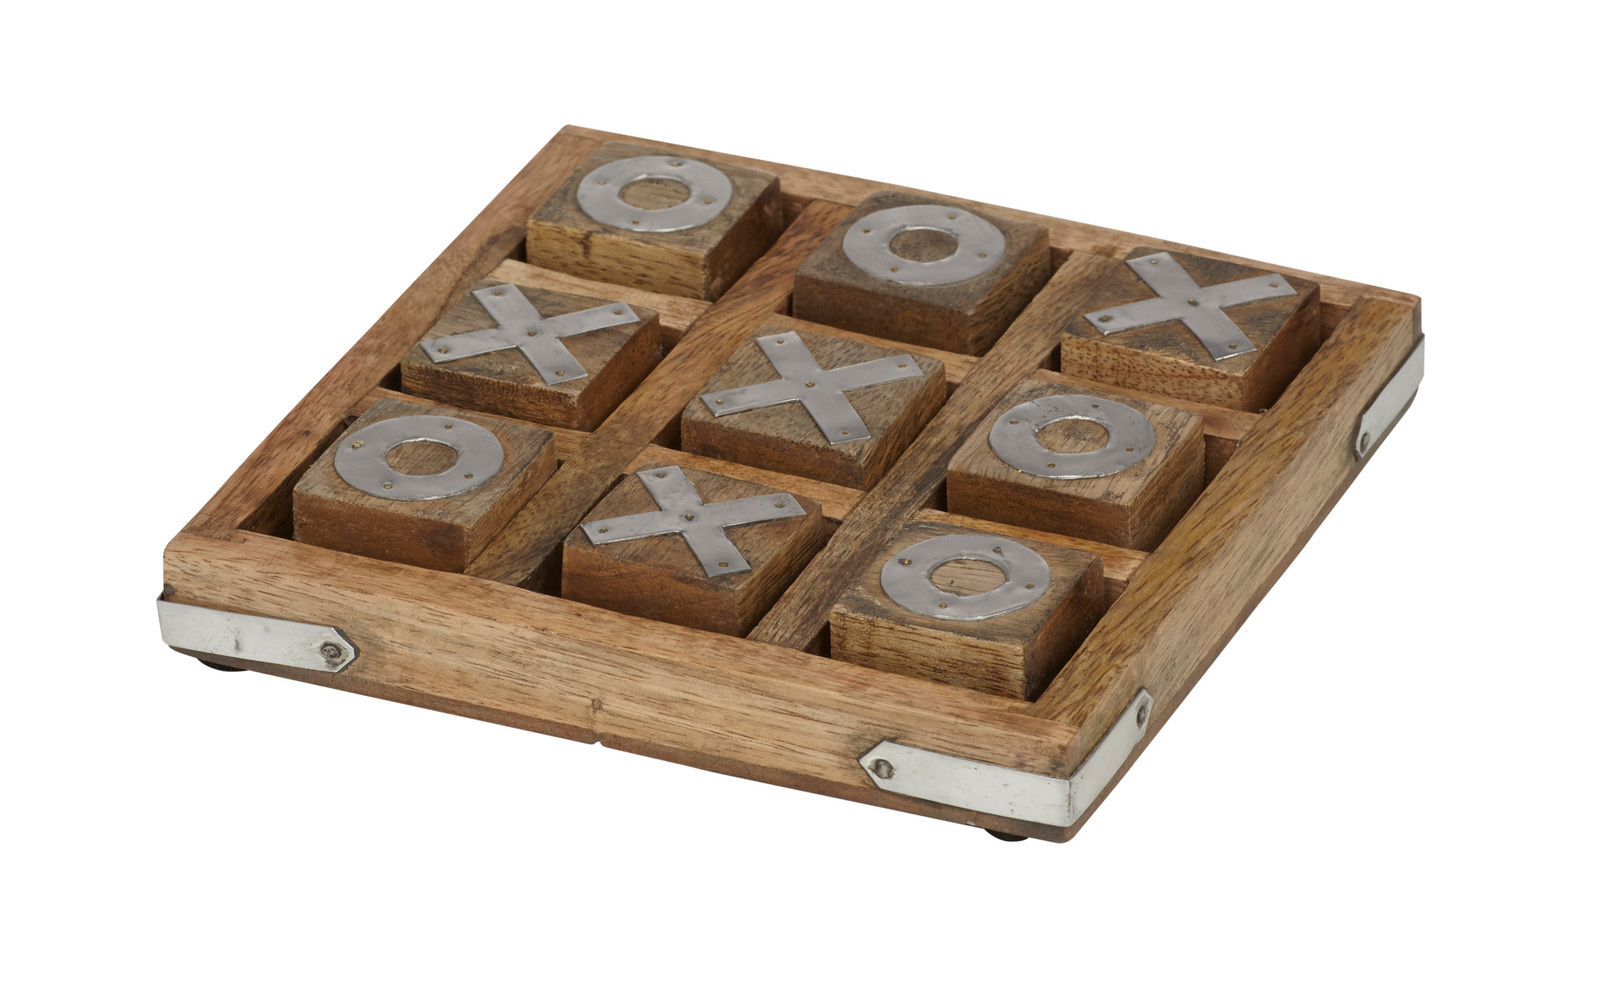 Amalfi: Noughts & Crosses Game (15x15cm) image